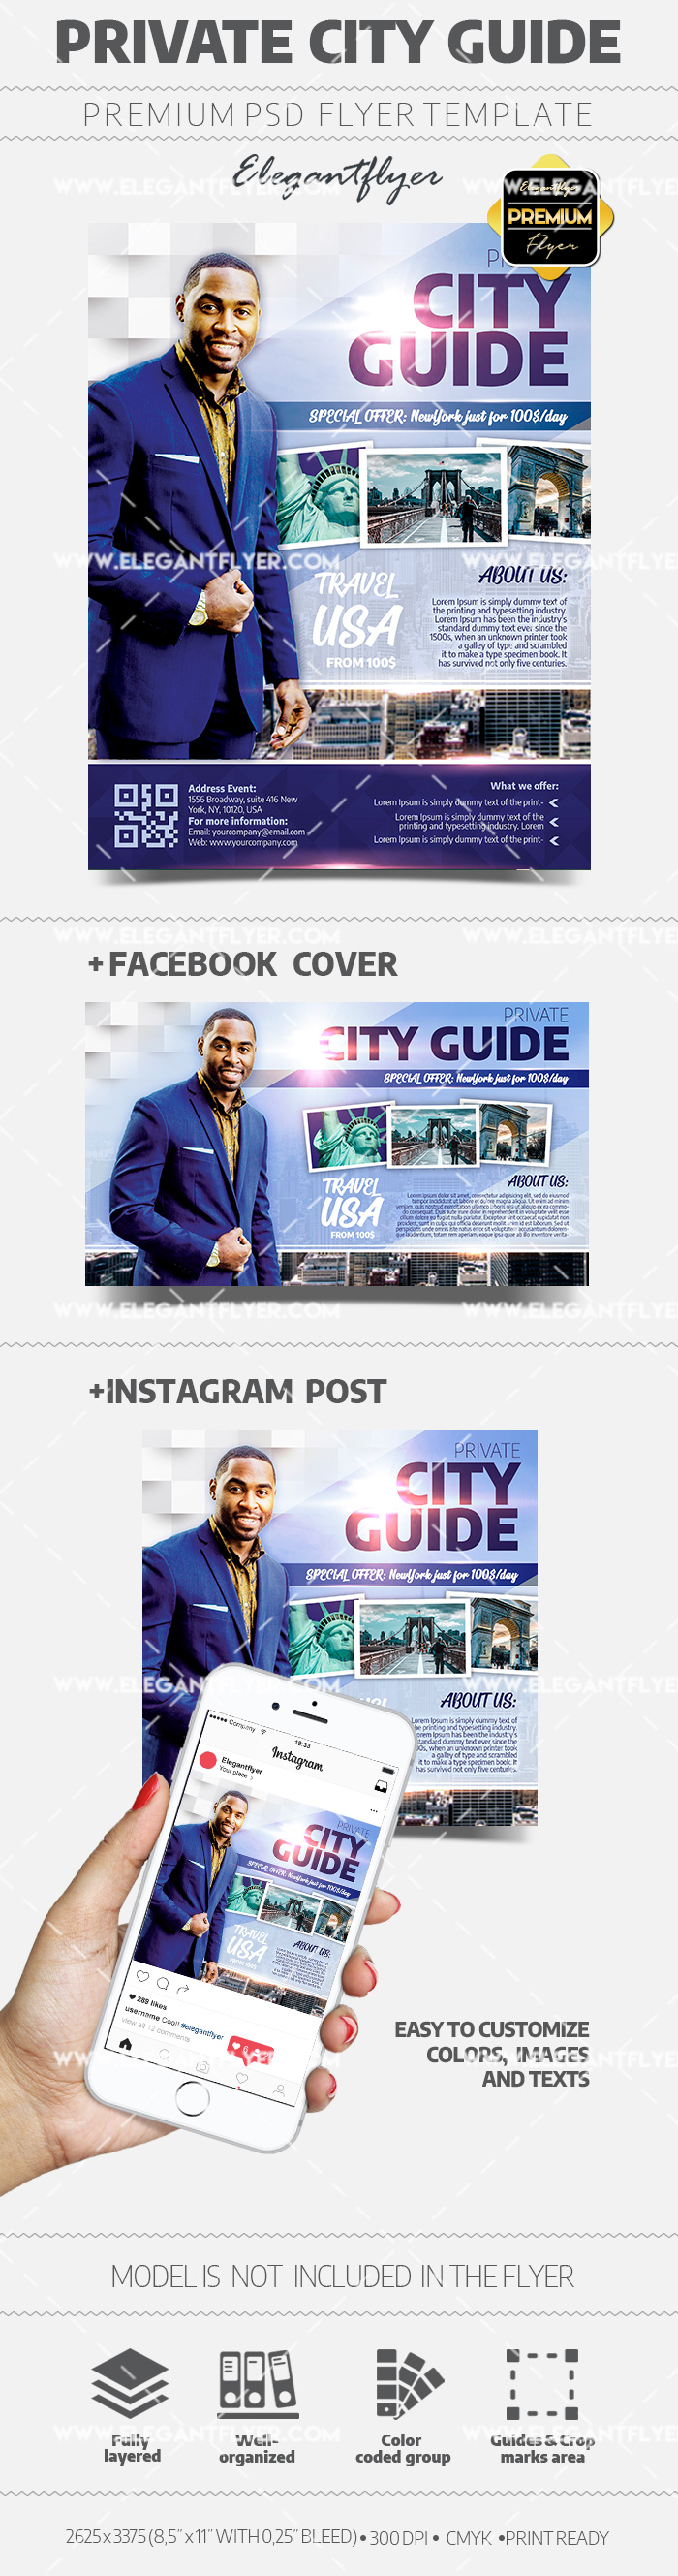 Private City Guide – Flyer PSD Template + Facebook Cover + Instagram Post